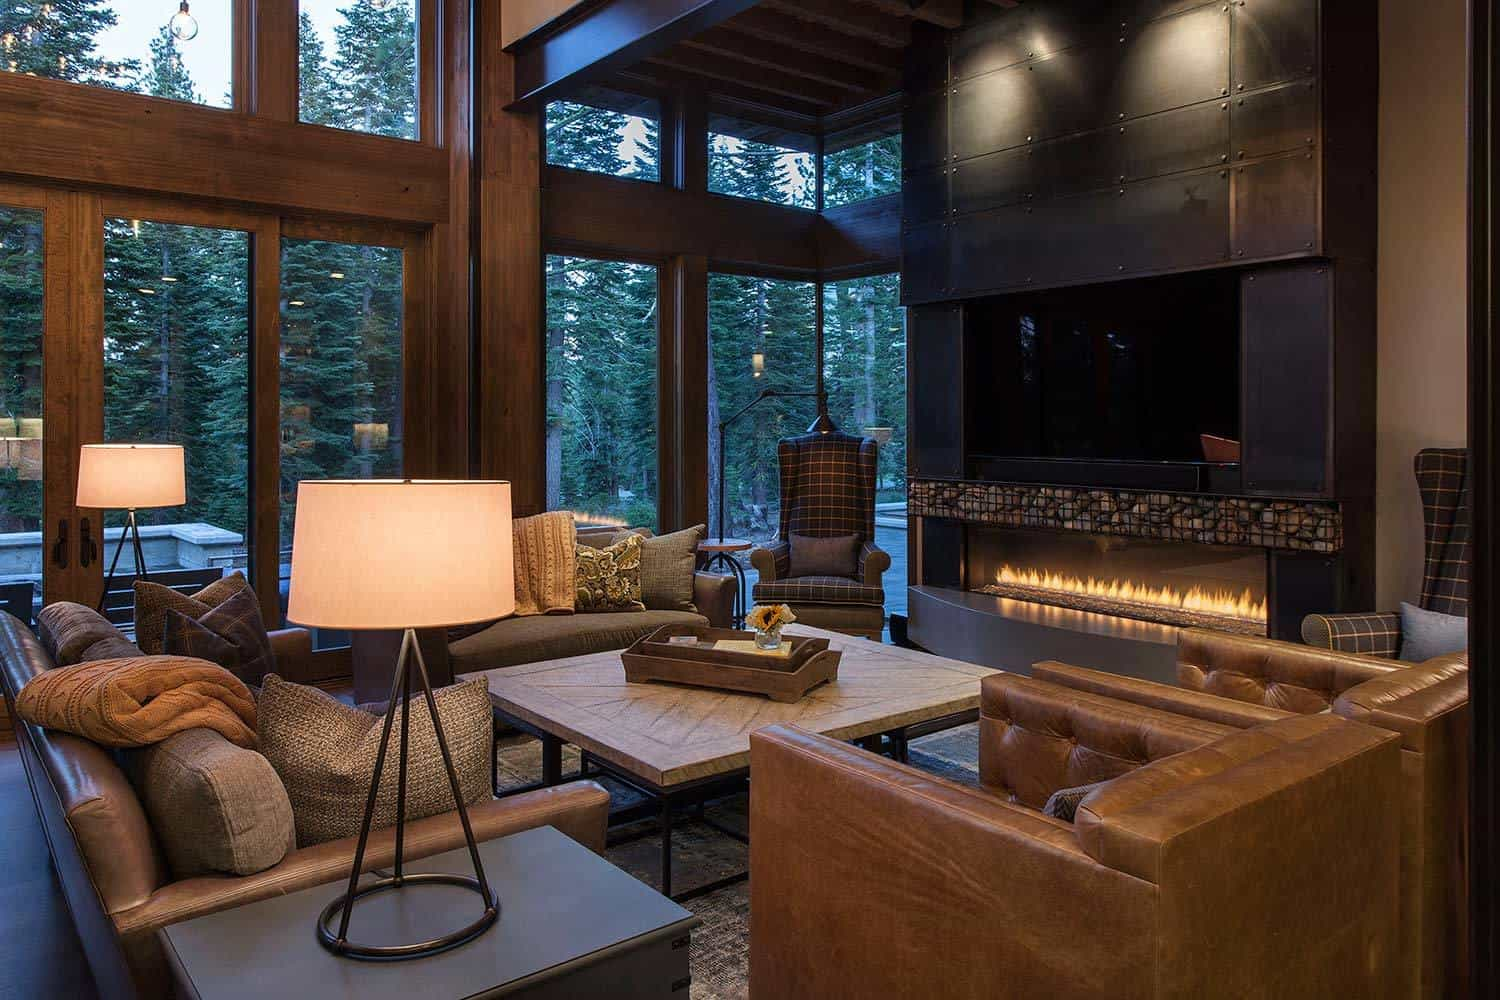 Lake tahoe getaway features contemporary barn aesthetic - Design house decor ...